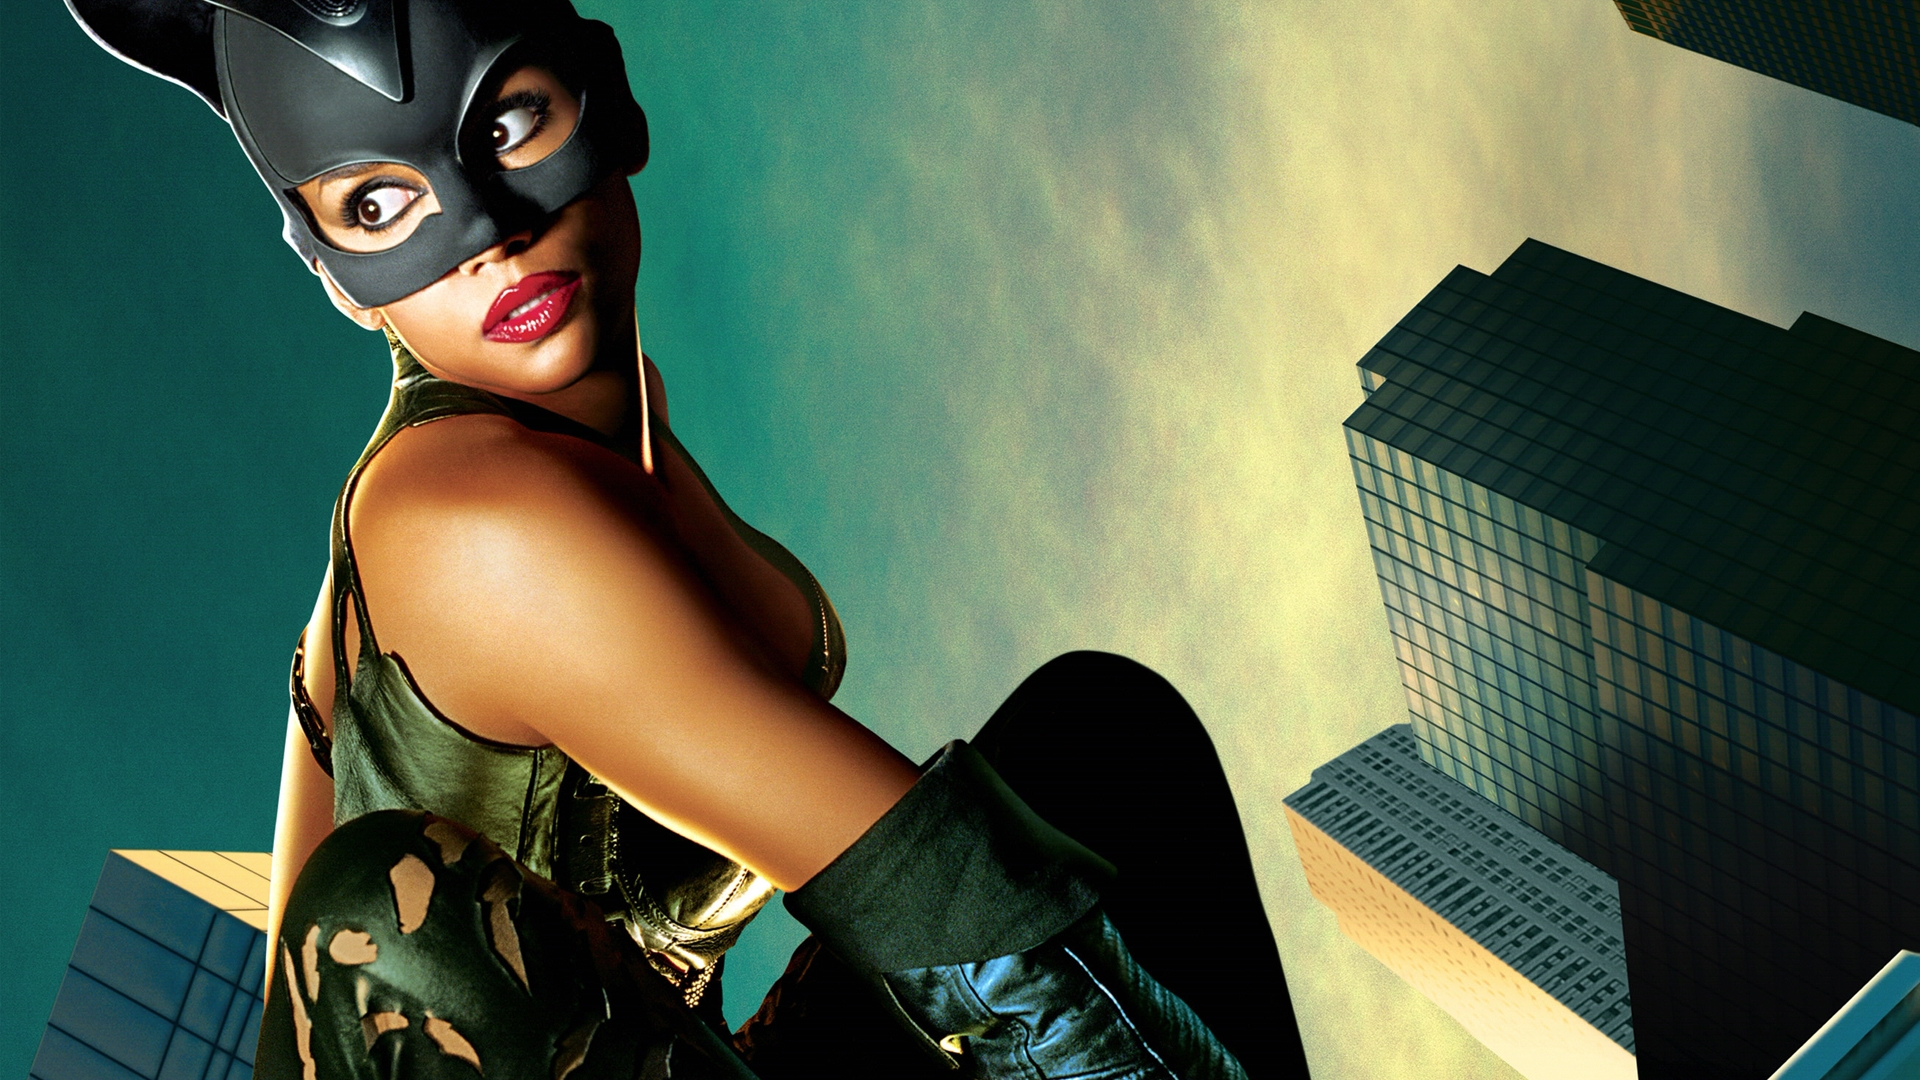 Download Wallpaper 1920x1080 Catwoman Halle Berry Mask Cat Sky